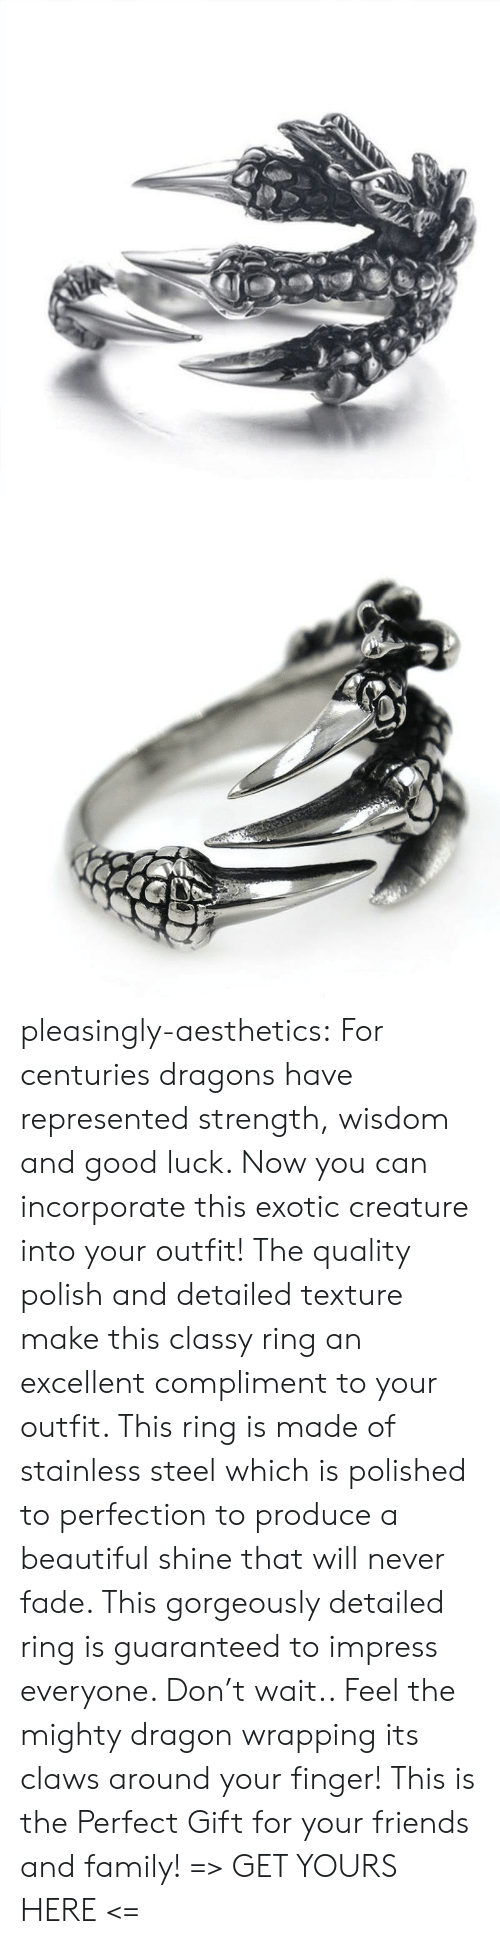 Centuries: pleasingly-aesthetics: For centuries dragons have represented strength, wisdom and good luck. Now you can incorporate this exotic creature into your outfit! The quality polish and detailed texture make this classy ring an excellent compliment to your outfit. This ring is made of stainless steel which is polished to perfection to produce a beautiful shine that will never fade.  This gorgeously detailed ring is guaranteed to impress everyone. Don't wait.. Feel the mighty dragon wrapping its claws around your finger! This is the Perfect Gift for your friends and family! => GET YOURS HERE <=